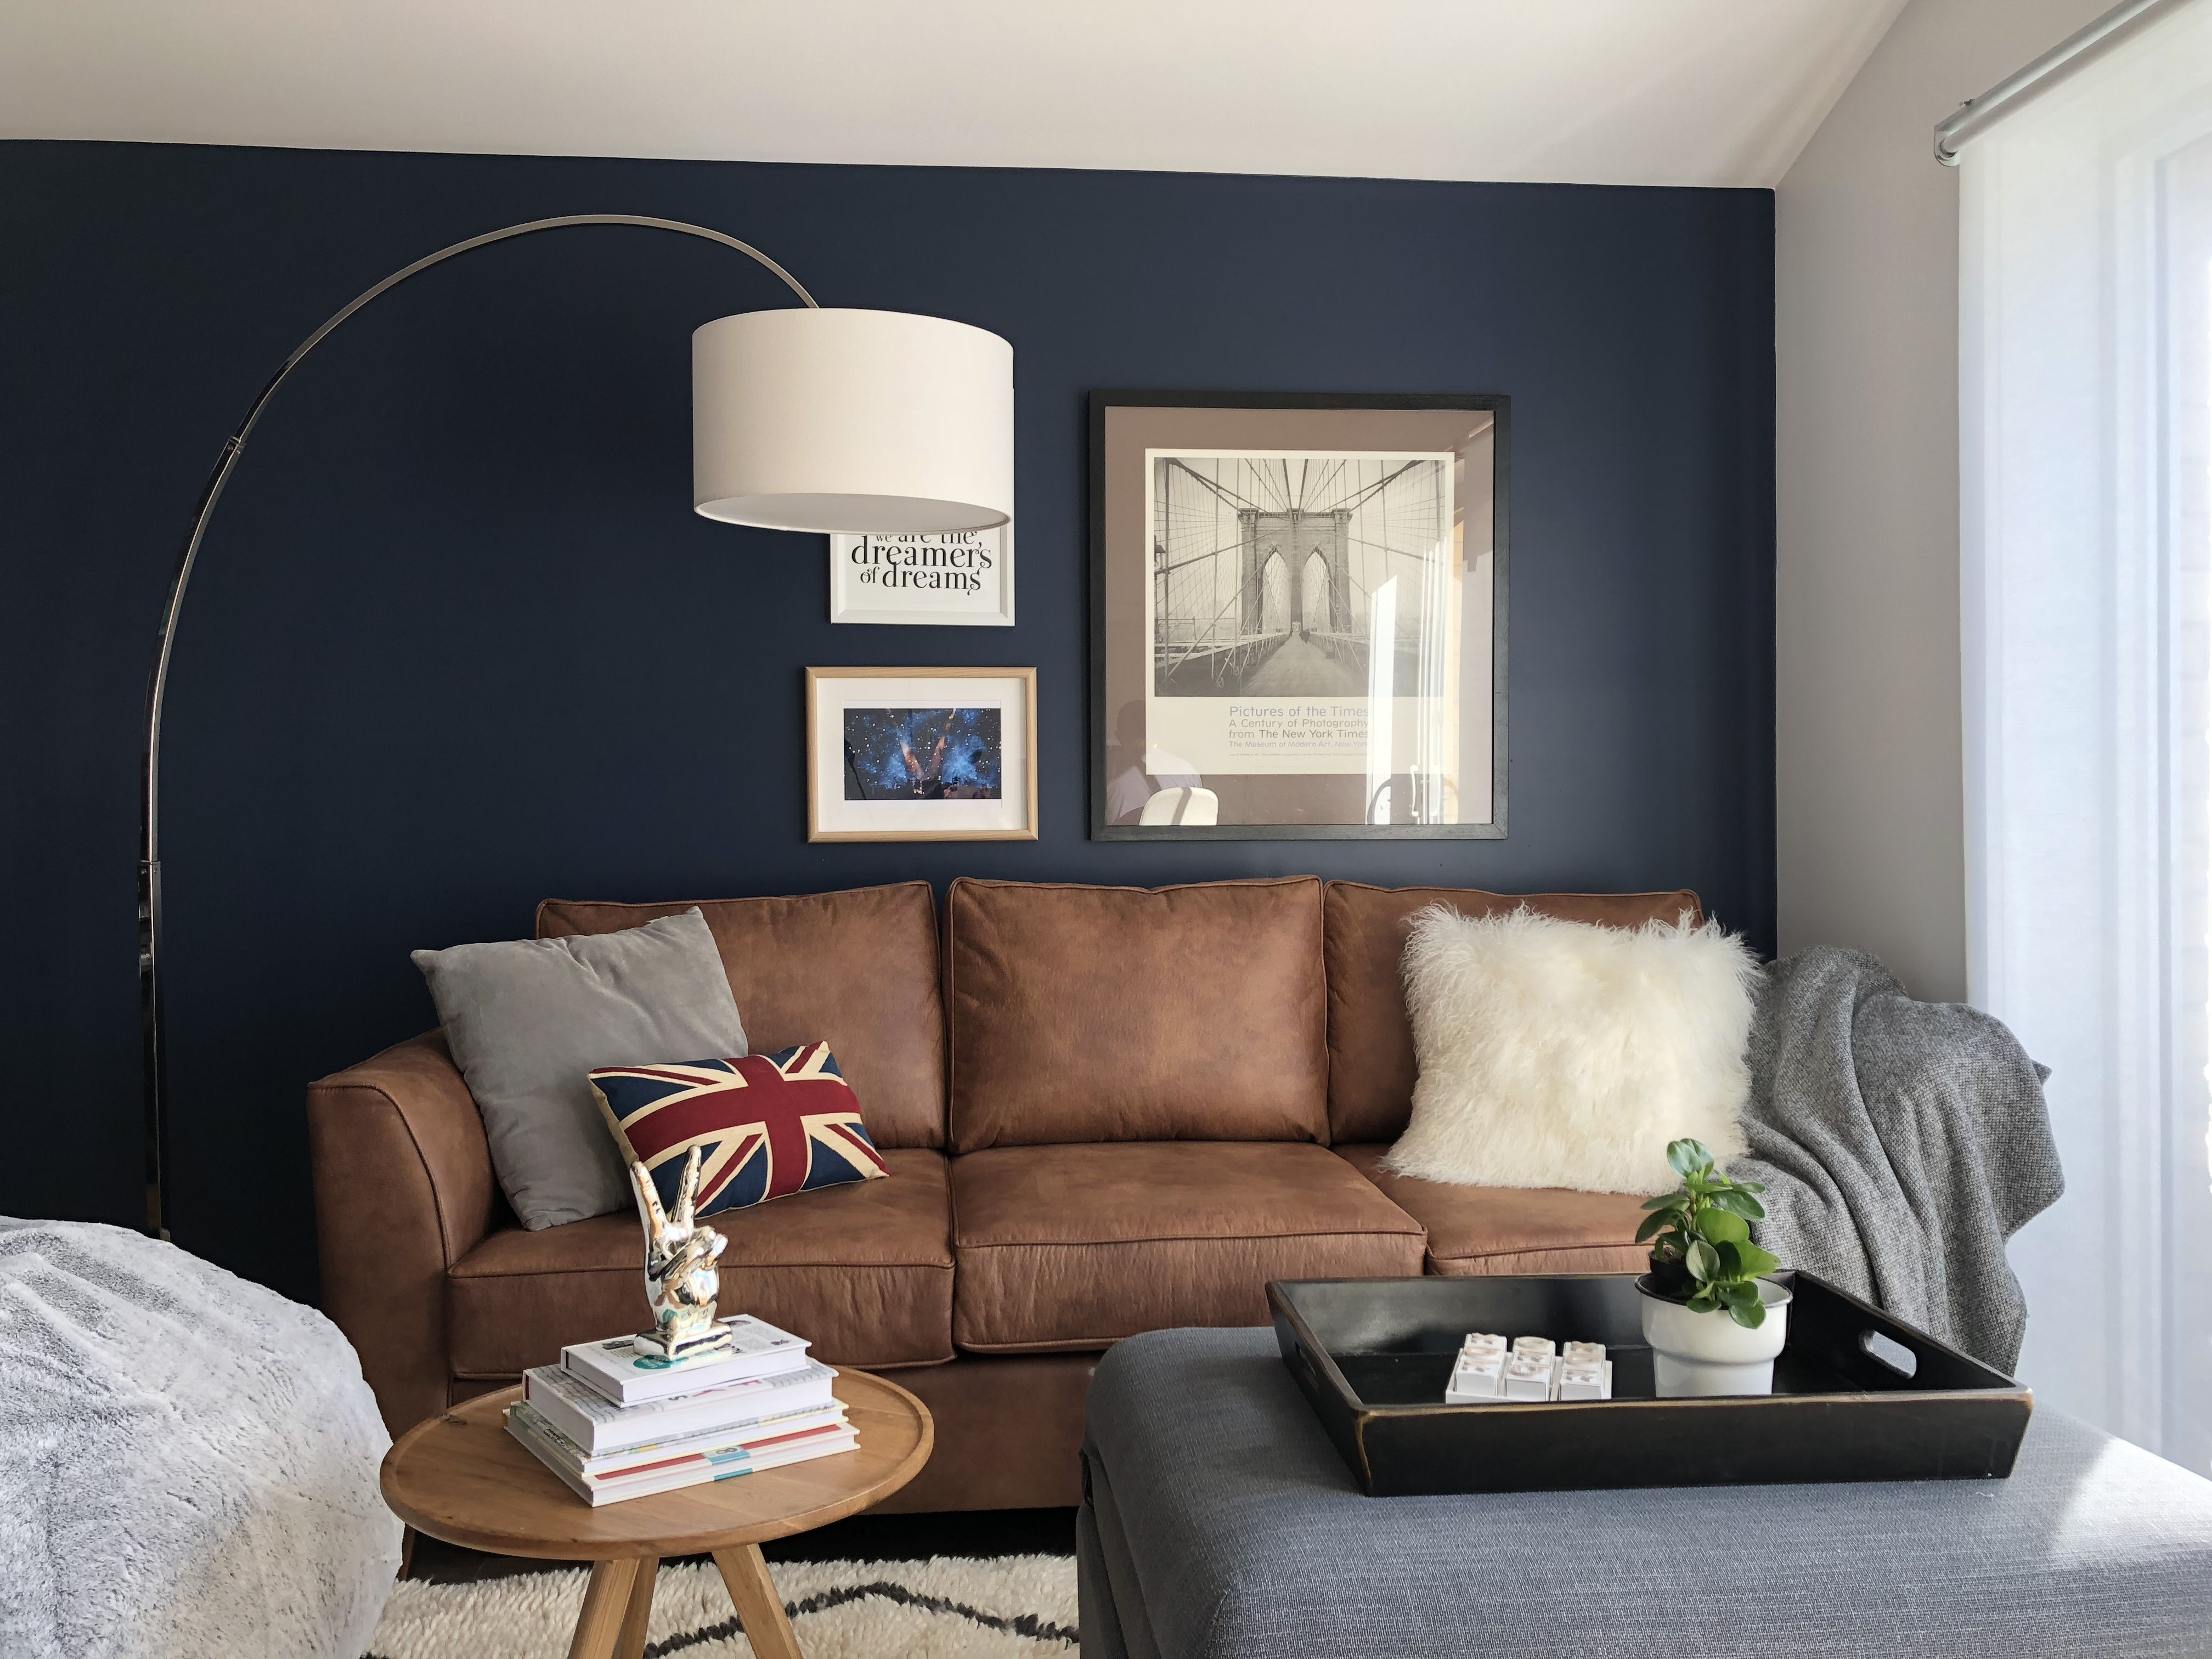 Pin By Kim Gebert On Home And Decor Blue Walls Living Room Blue Feature Wall Living Room Leather Sofa Living Room